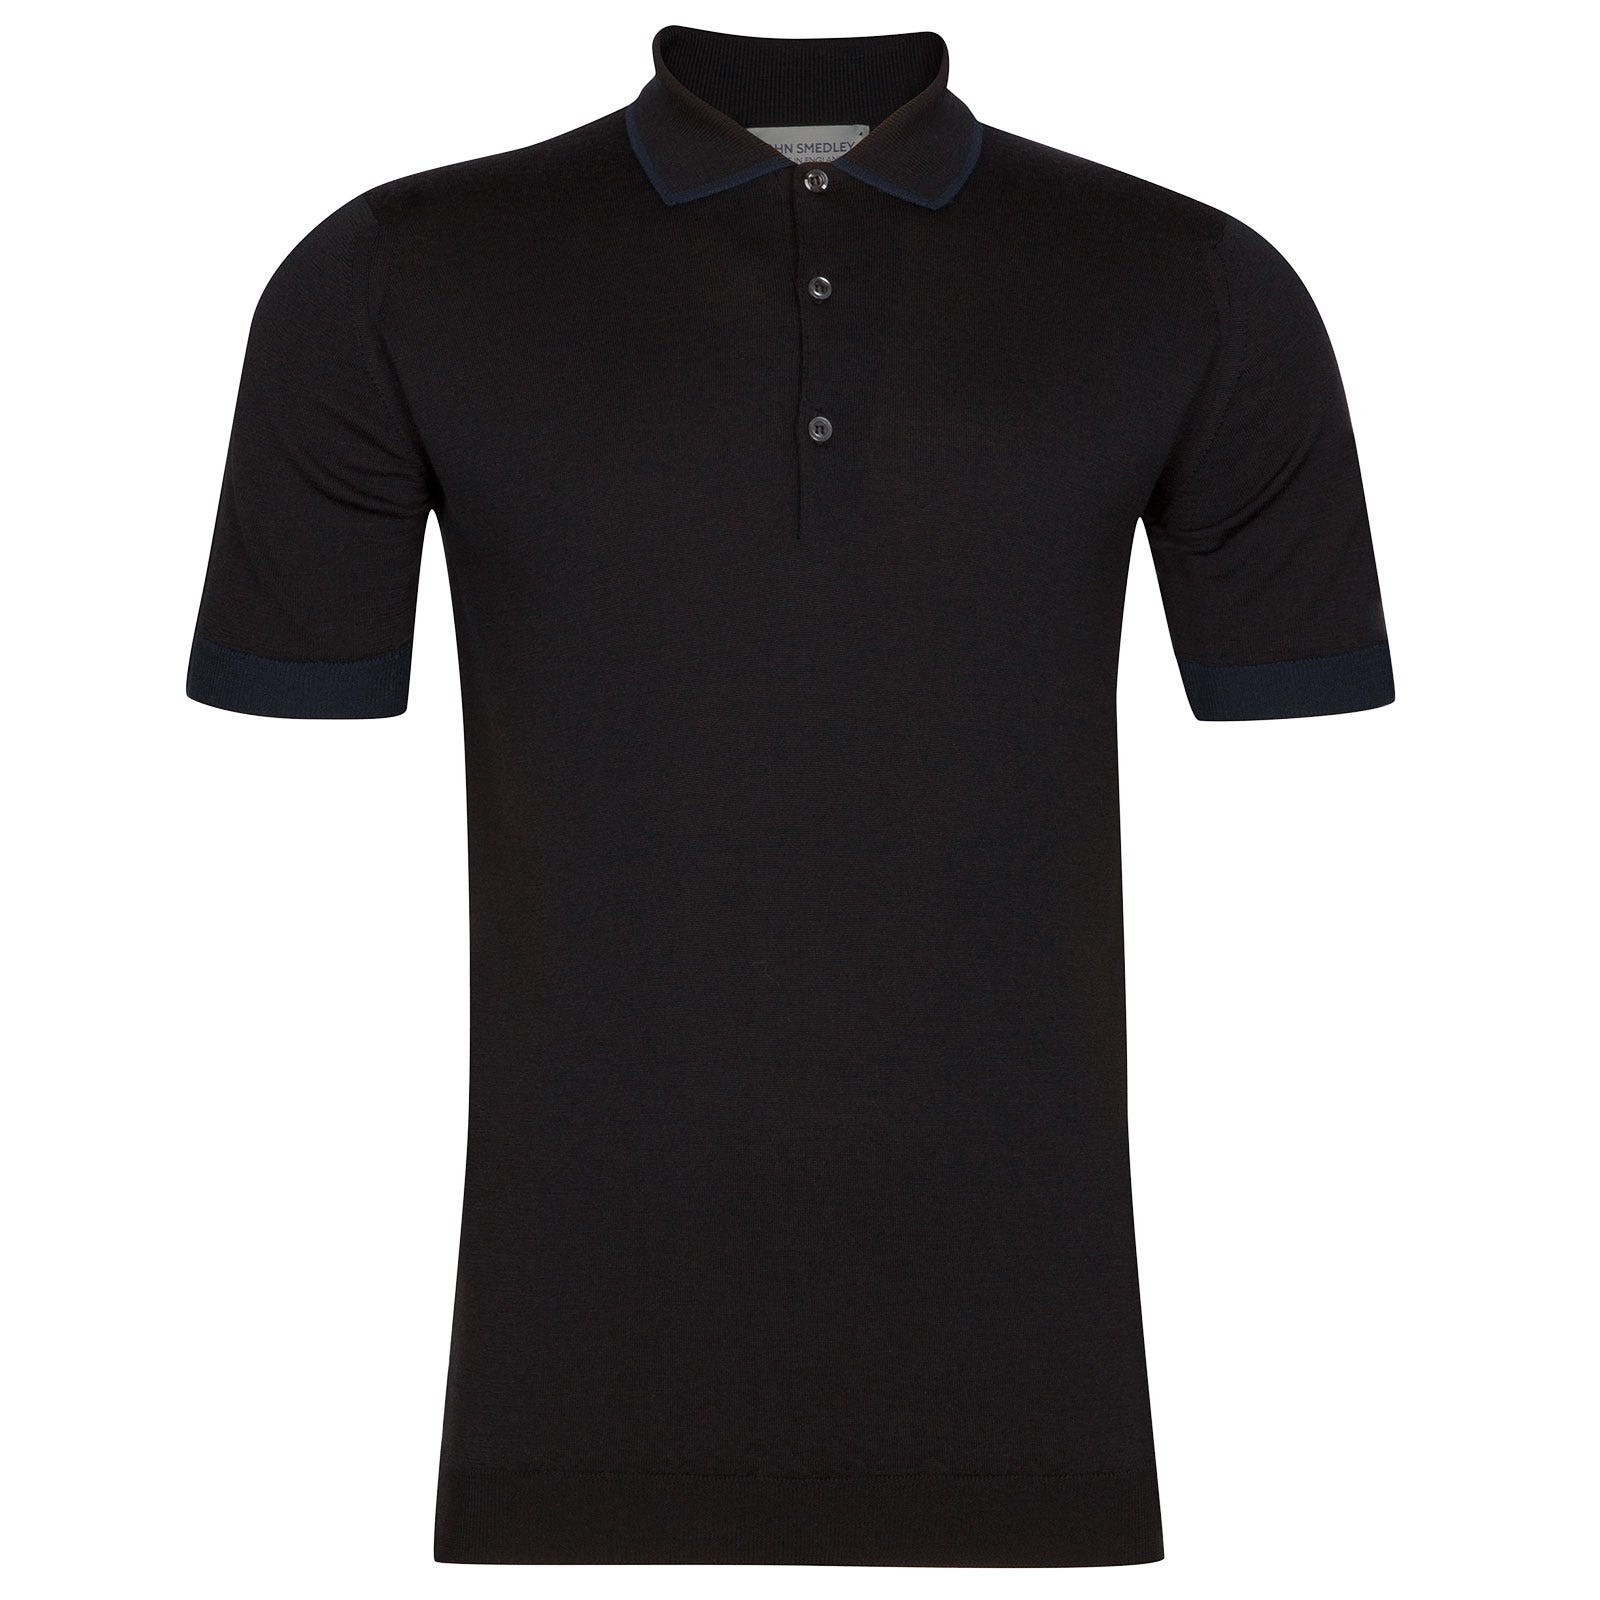 John Smedley nailsea Merino Wool Shirt in Black/Midnight-XXL